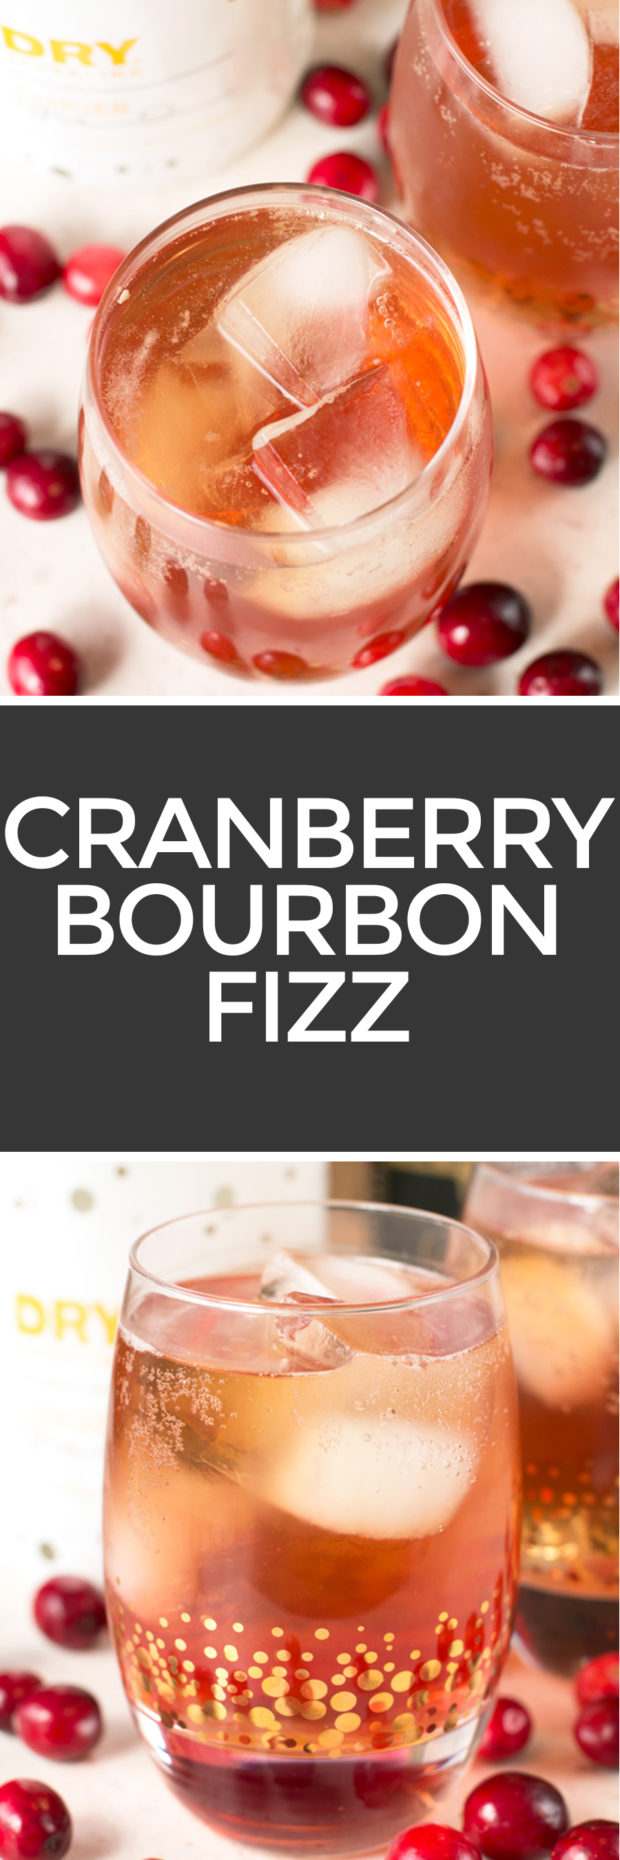 Cranberry Fizz Cocktail Recipe: Cranberry Ginger Bourbon Fizz